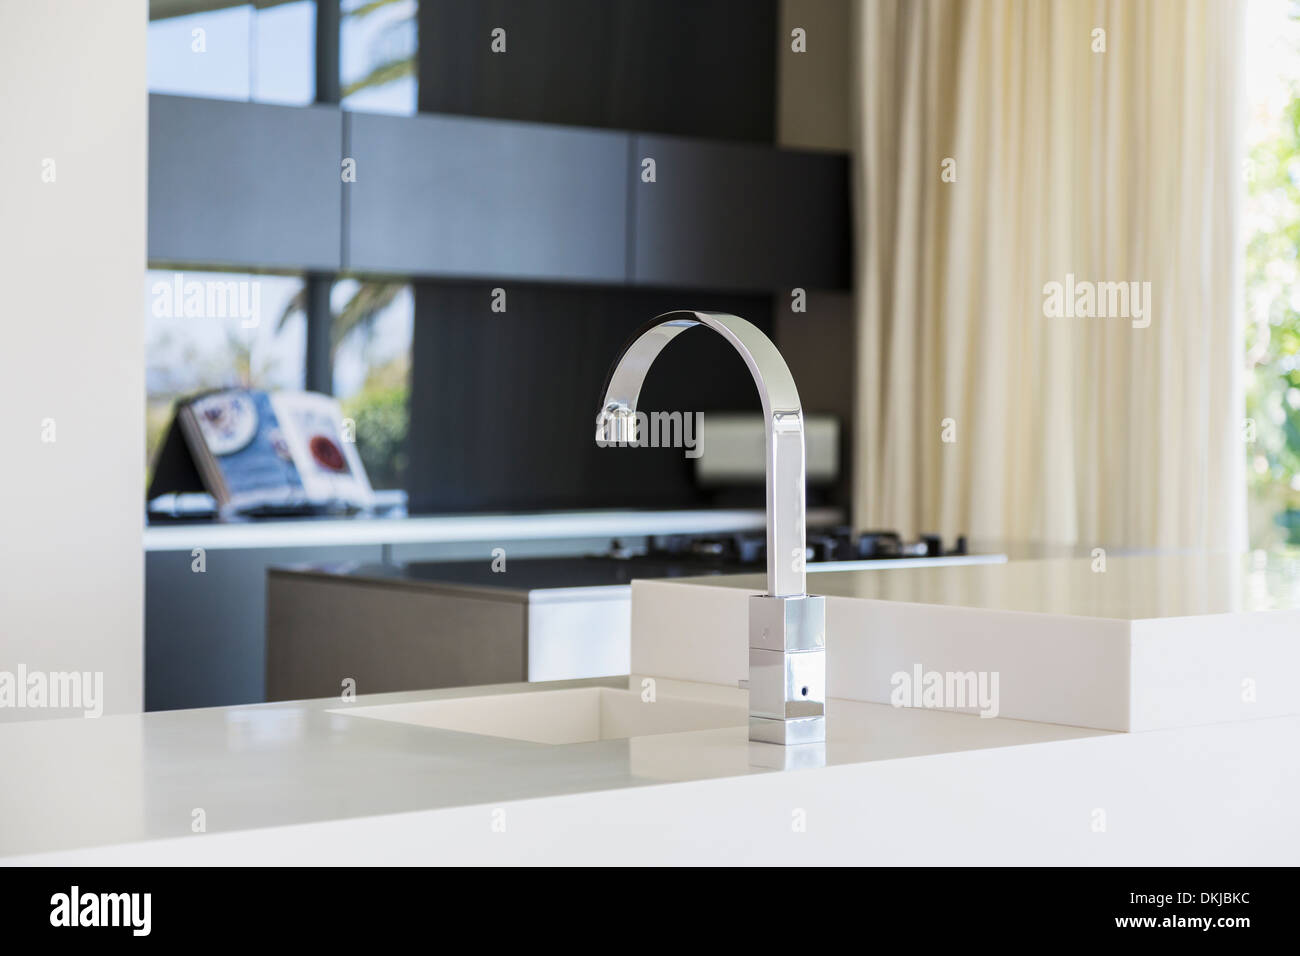 Faucet and sink in modern kitchen - Stock Image